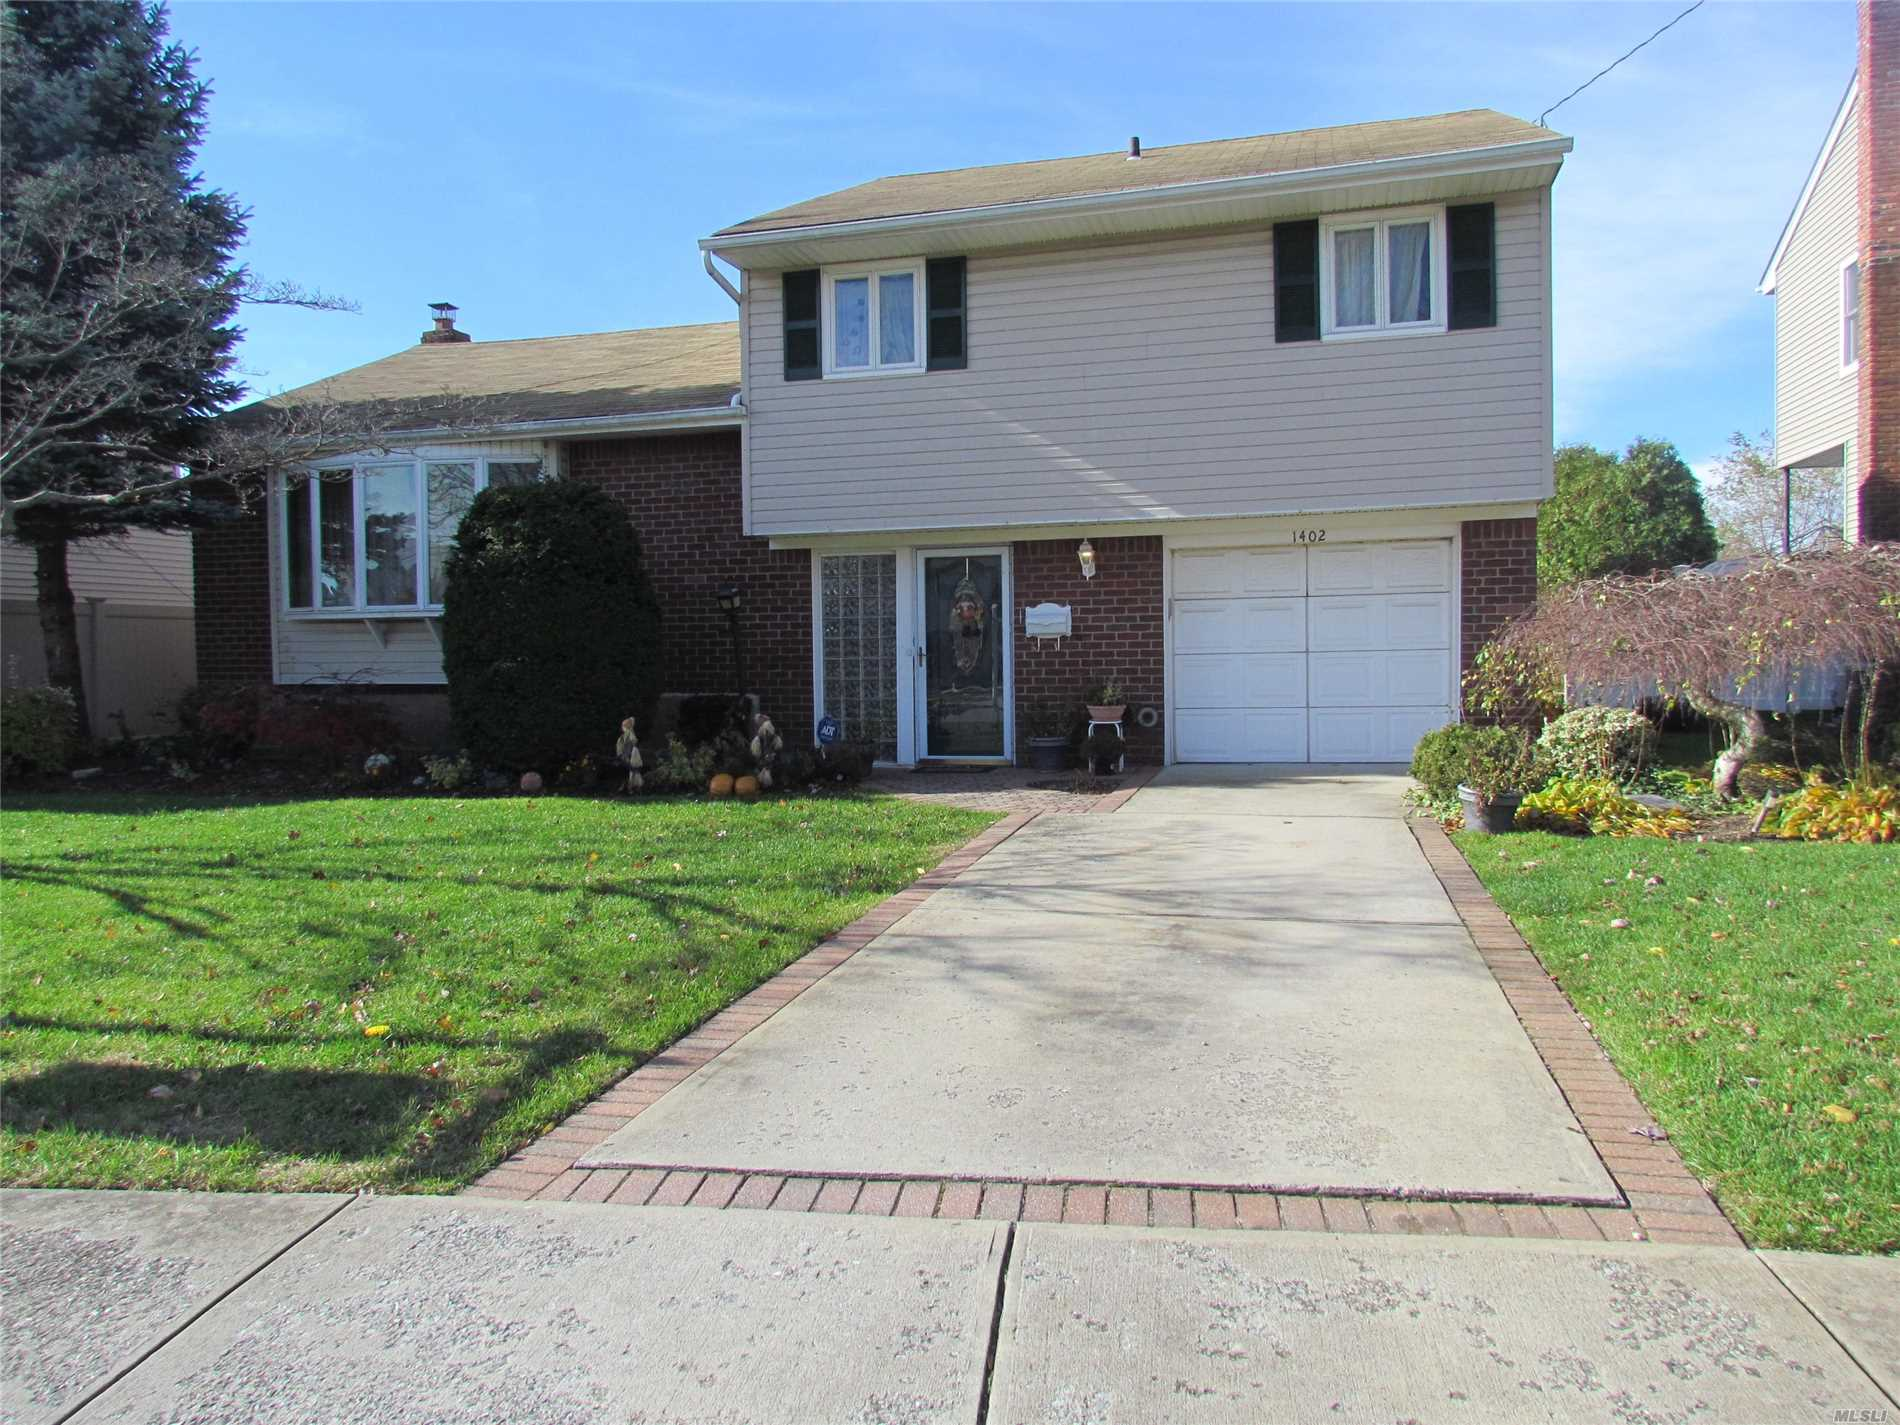 Lovely Split In N. Bellmore. 4 Bedrooms, 2 Bathrooms, Large Den. 2nd Story Bath Has Dual Entry To Hall And To Master With Private Tub Area. Living Room/Dining Room Hard Wood Floors. Eik With Sliders To Deck Overlooking Oversized Property. Taxes Have Never Been Grieved. Buyer To Verify All Information.